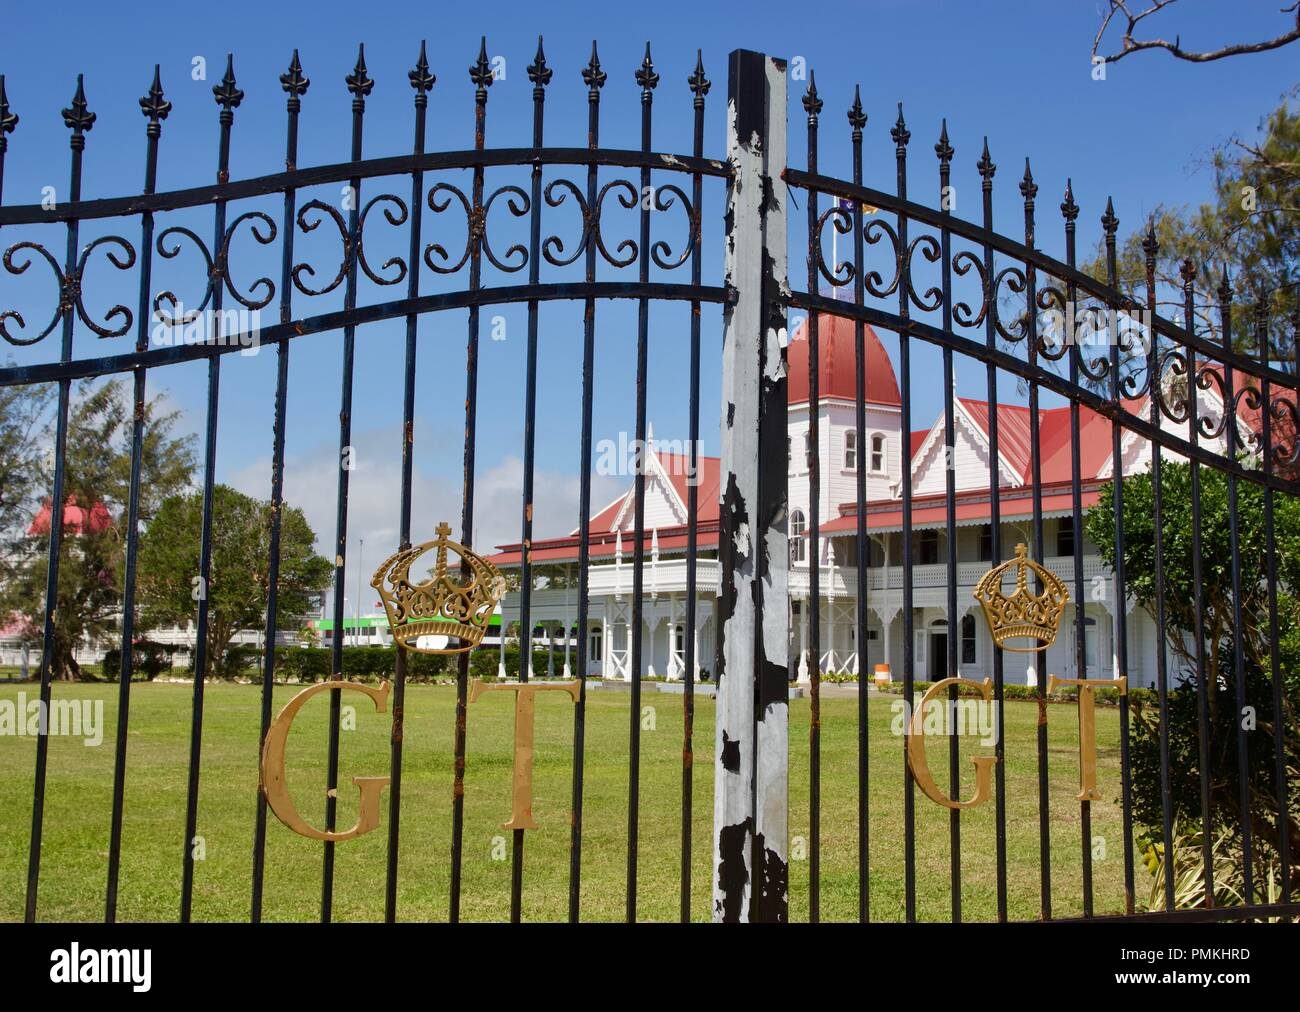 The Royal Palace is a wooden palace and the official residence of the King of Tonga in the capital Nukuʻalofa, Kingdom of Tonga Stock Photo